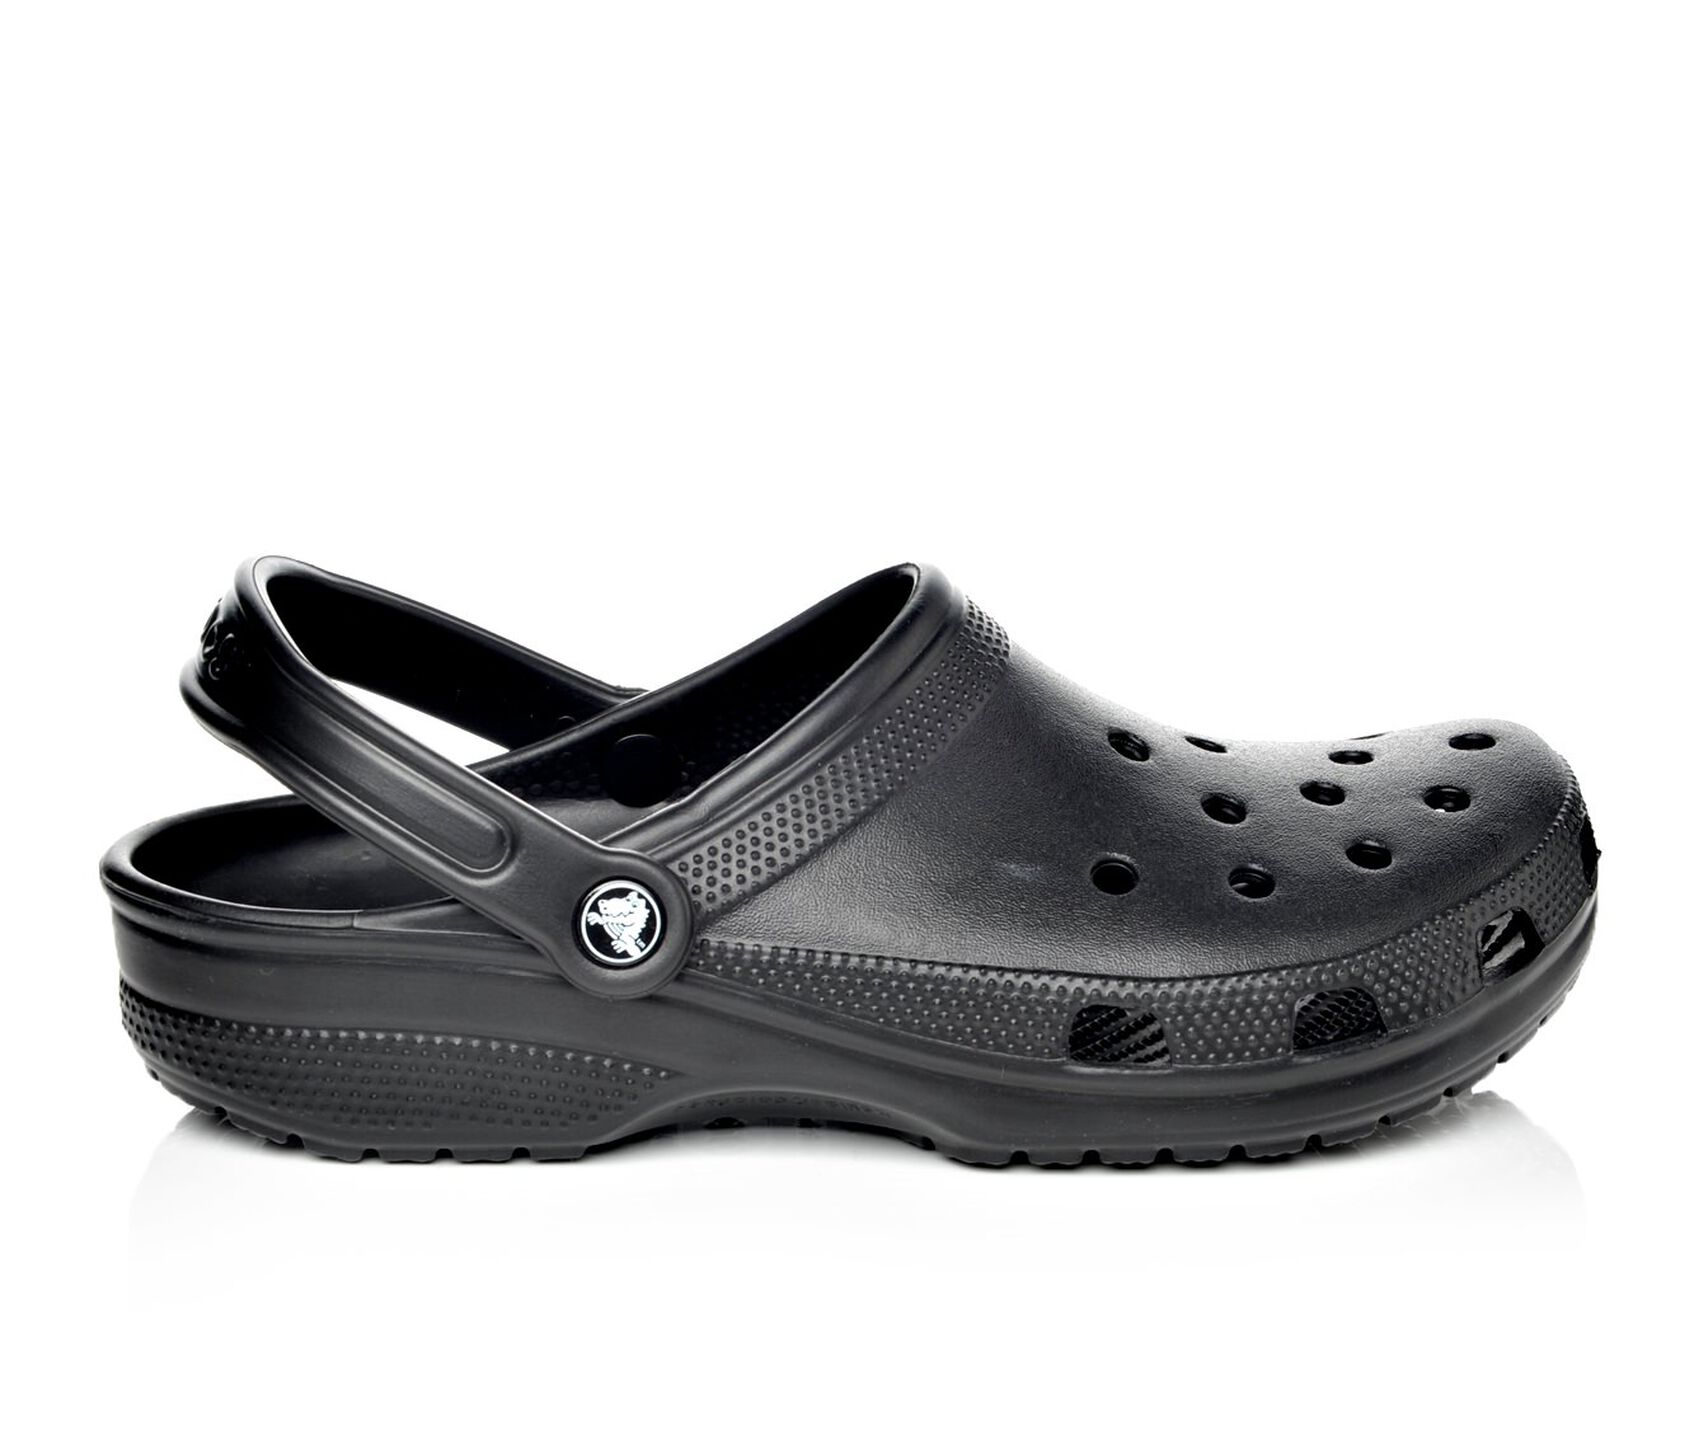 Where To Get Men S Croc Shoes